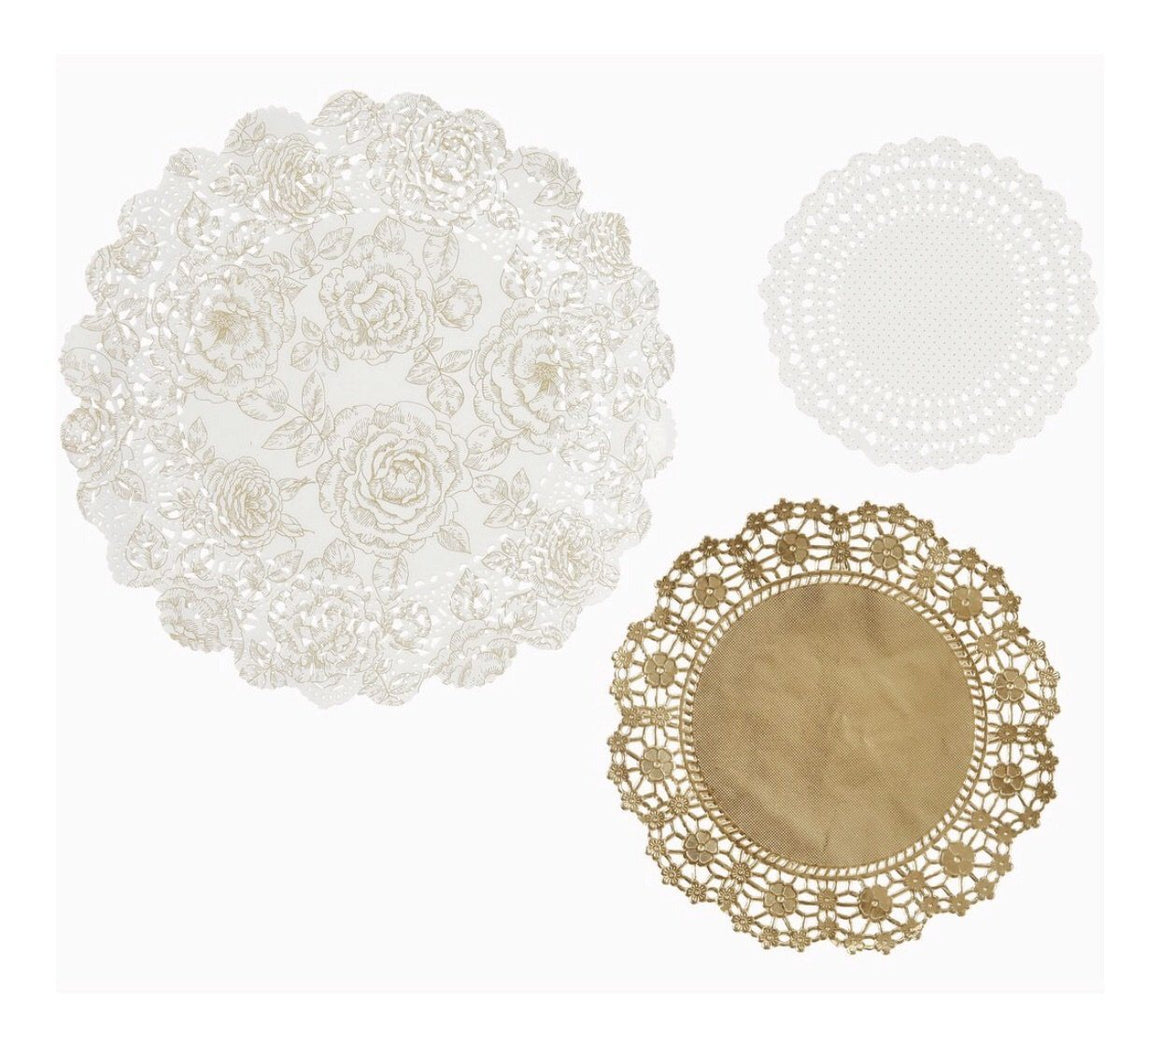 DOILIES - PARTY PORCELAIN GOLD TALKING TABLES, EXTRAS, TALKING TABLES - Bon + Co. Party Studio